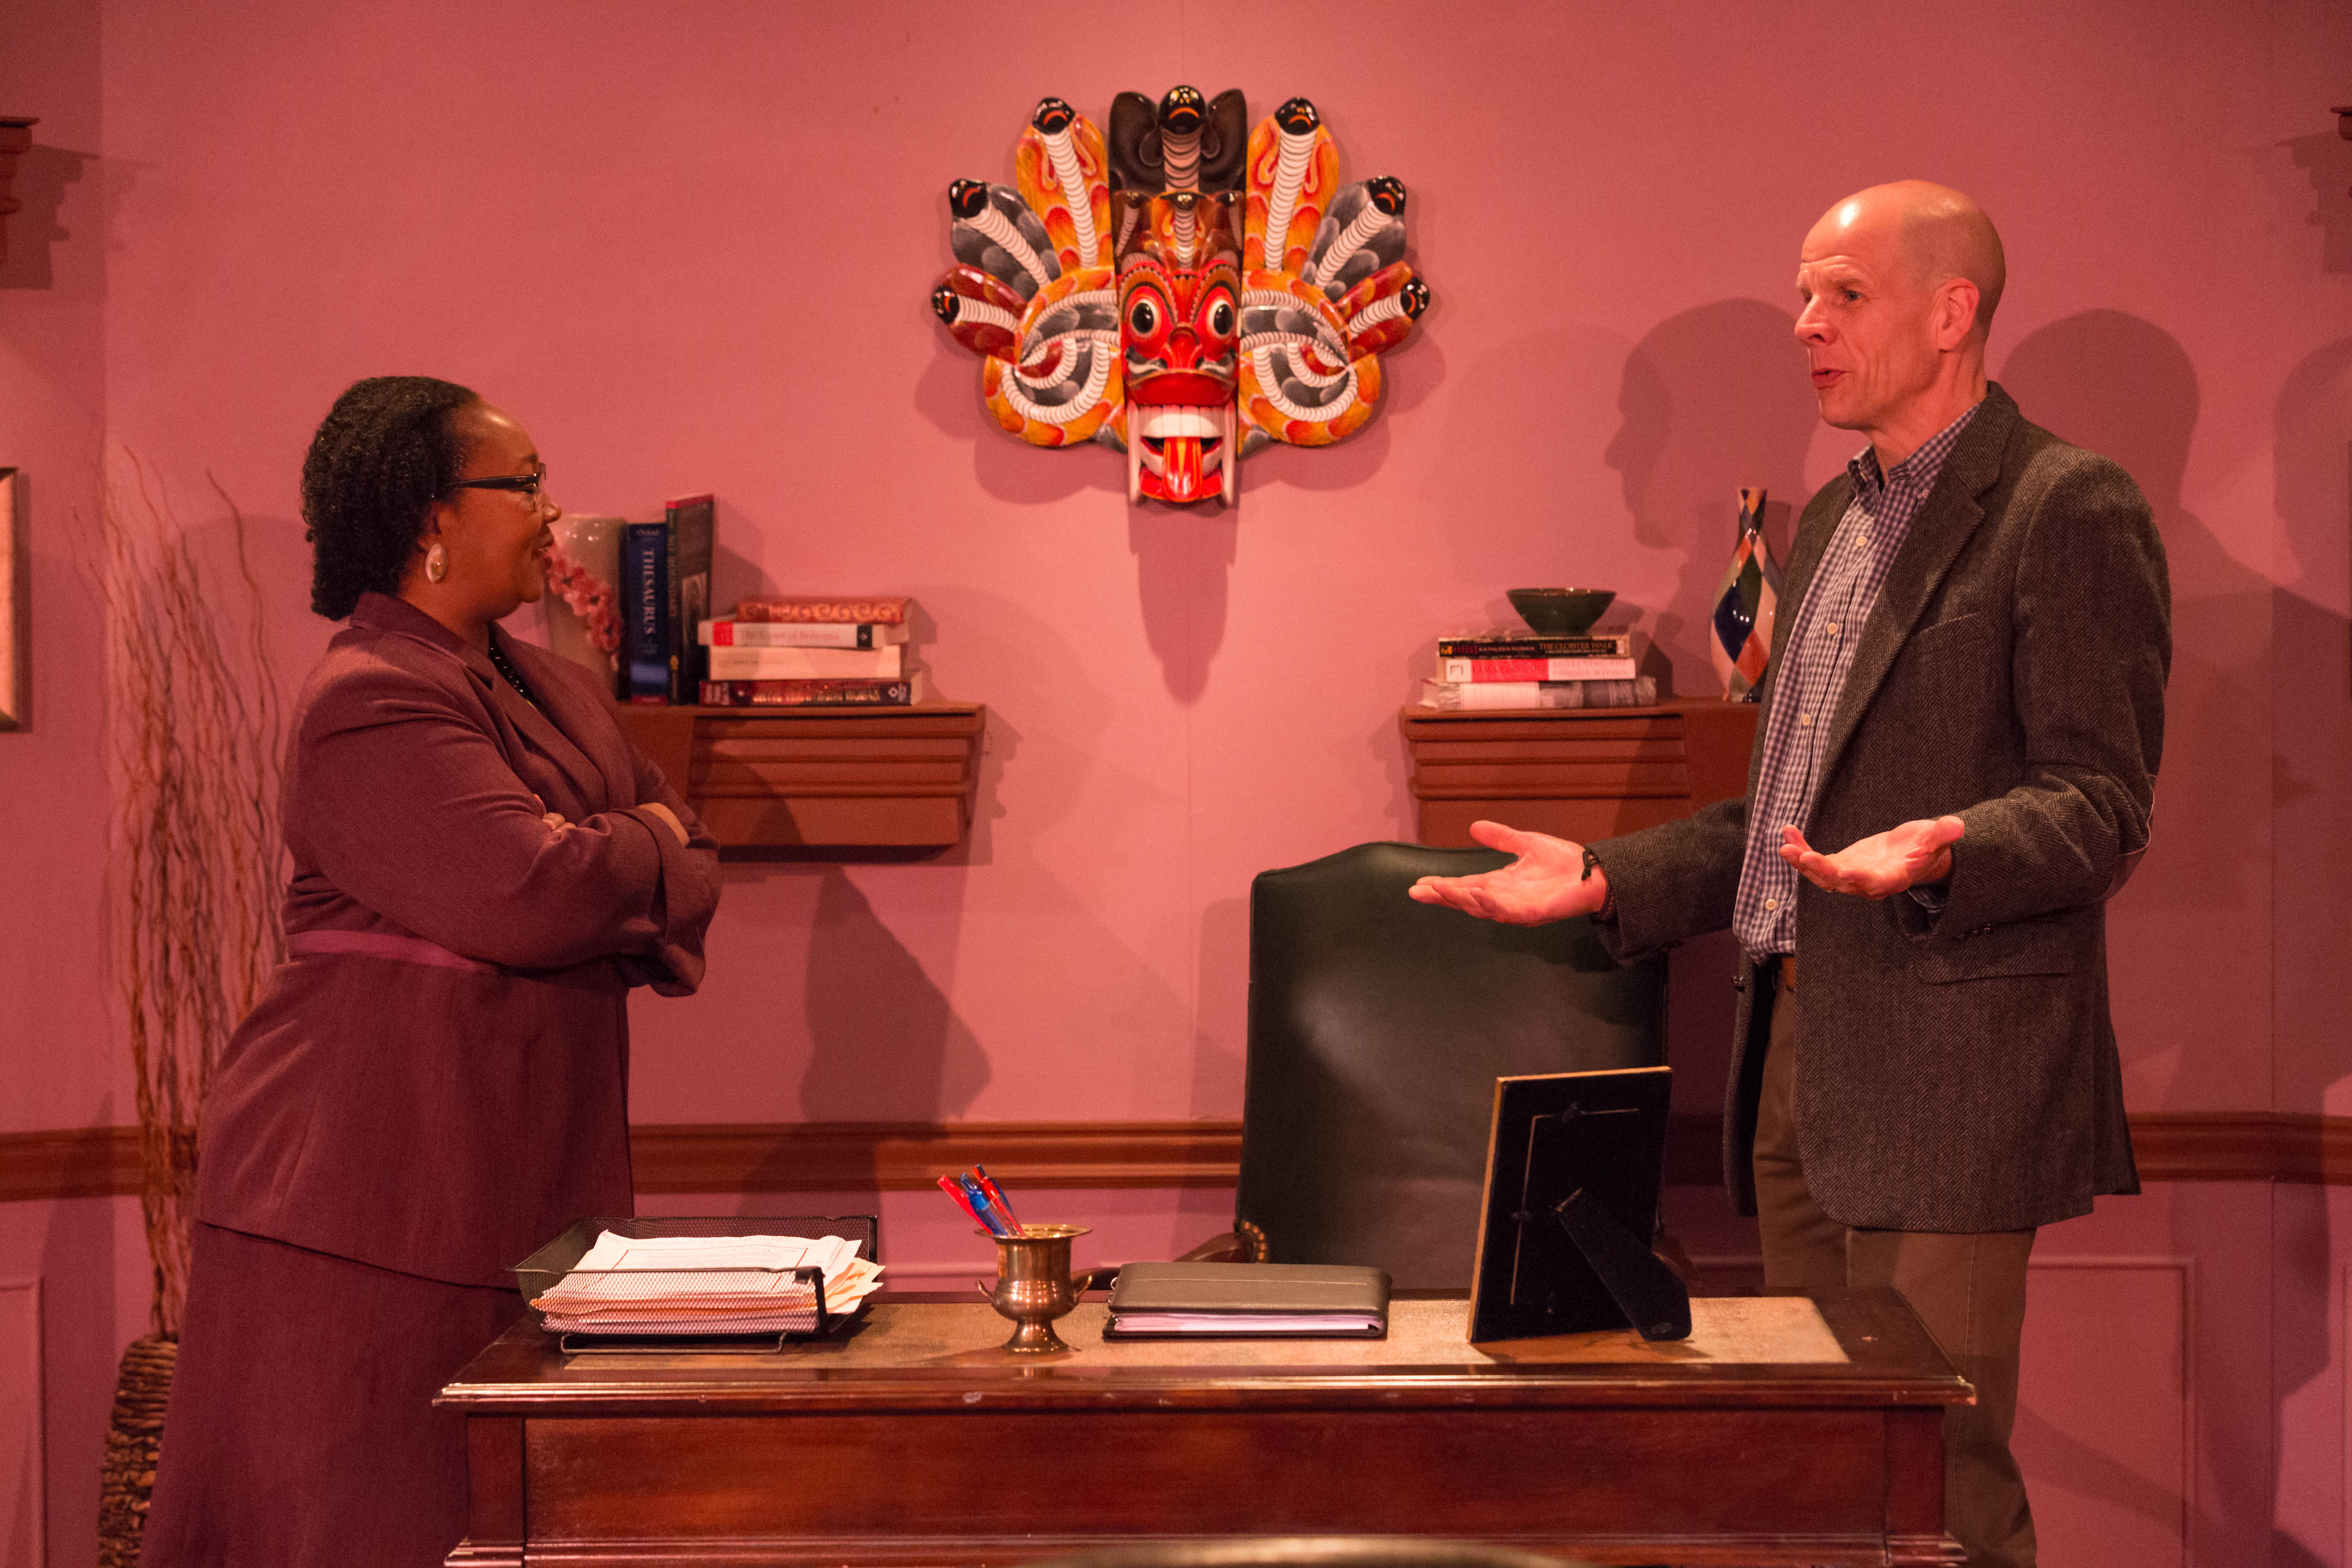 BWW Review: HUMAN RITES Broadens Your Perceptions at Phoenix Theater